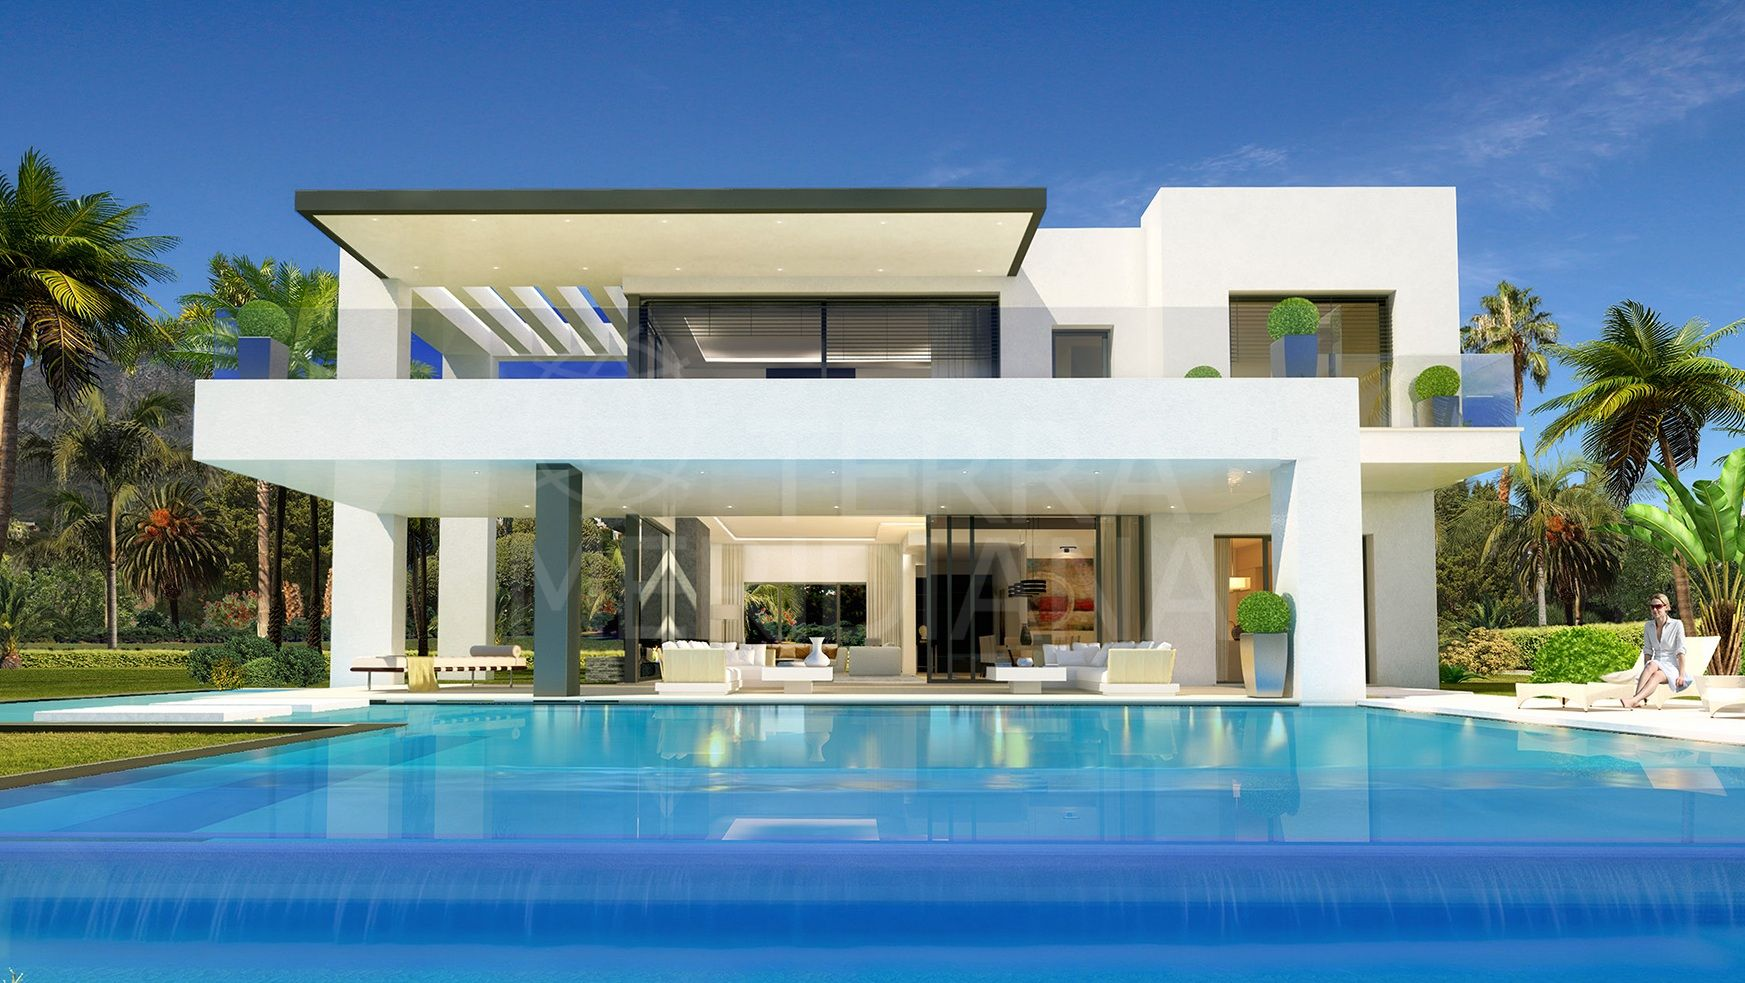 C8ncept Marbella , Marbella Golden Mile - Exclusive project of 8 contemporary villas in a gated community located 5 minutes from Puerto Banus with sea views